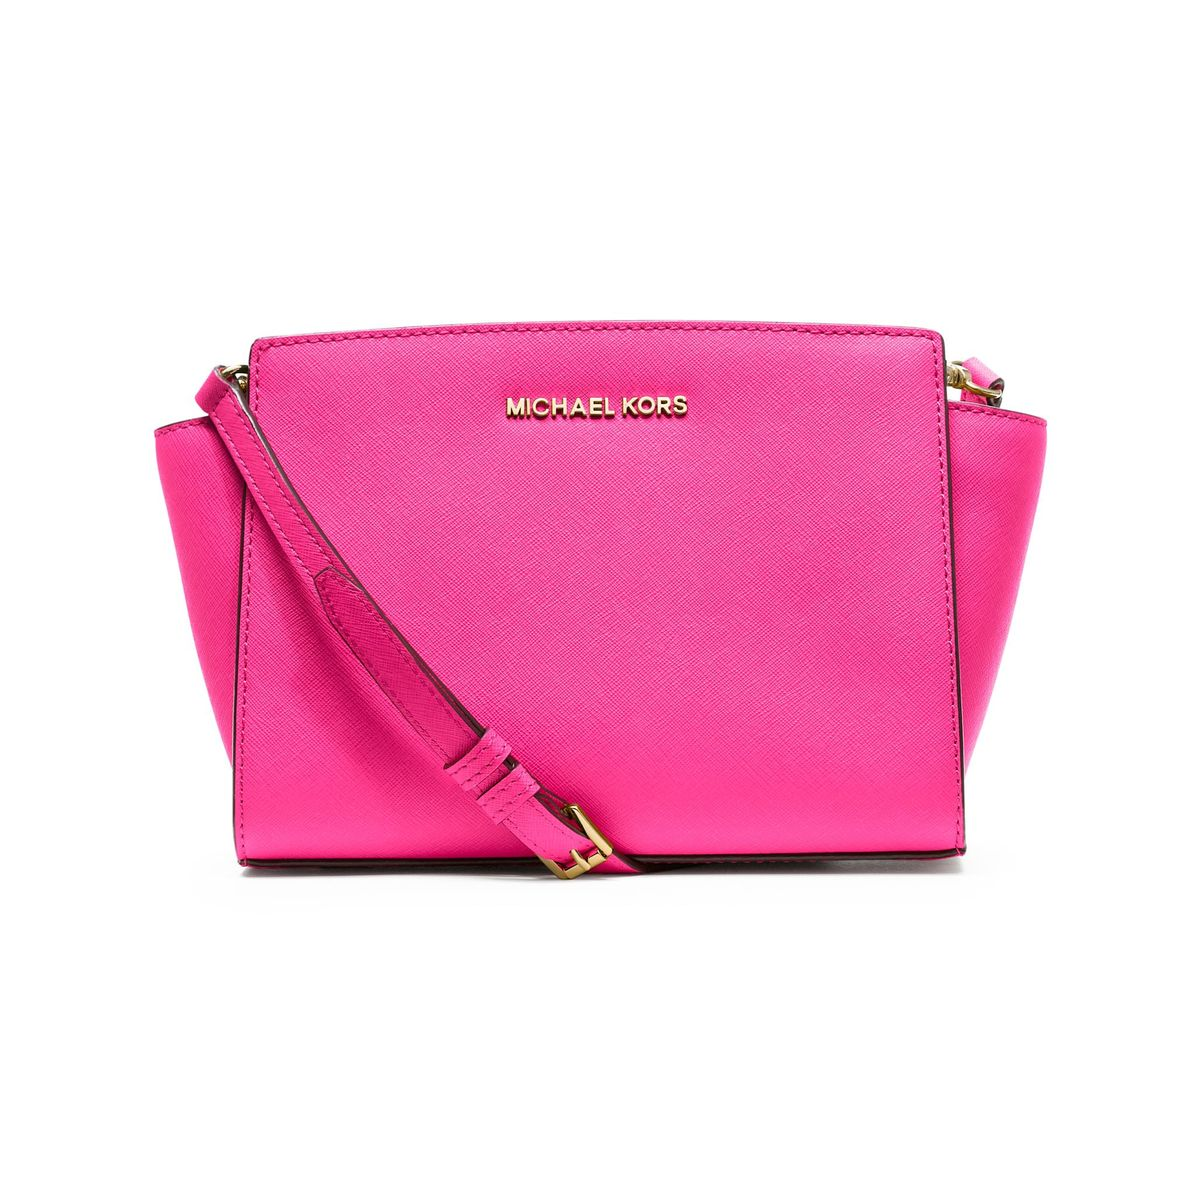 93b4db10ddf2f ... norway dillards michael michael kors old selma messenger bag neon pink  46371 3ef91